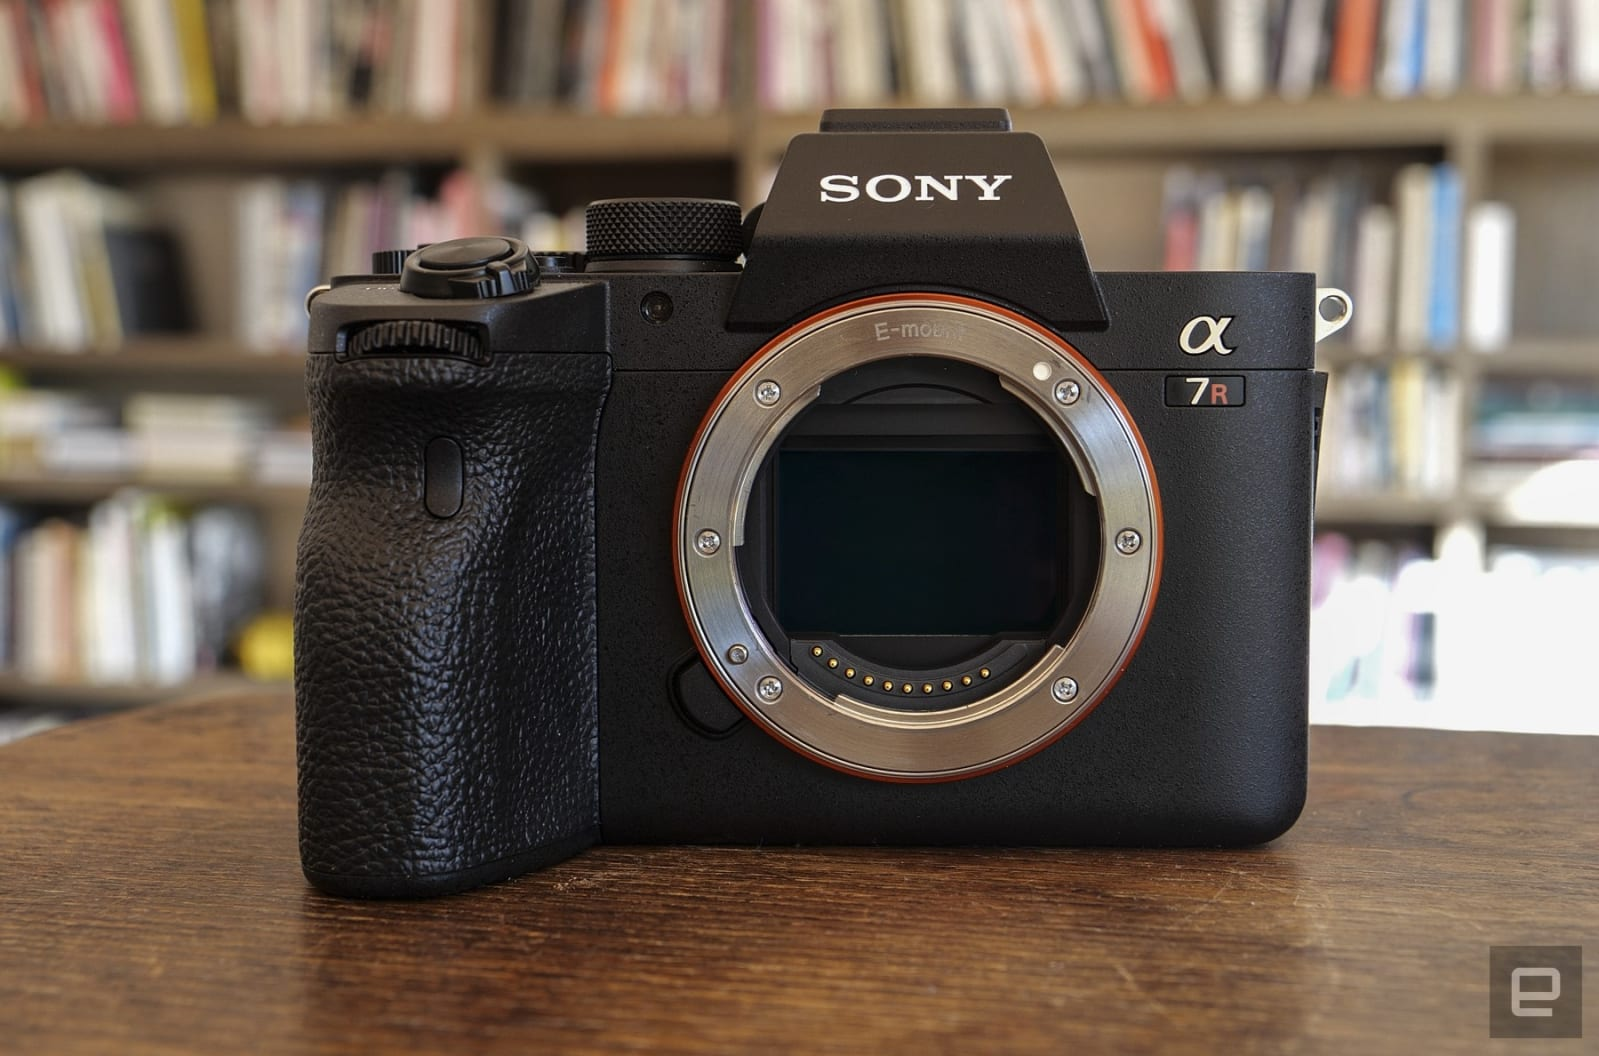 Sony A7R IV full-frame mirrorless camera